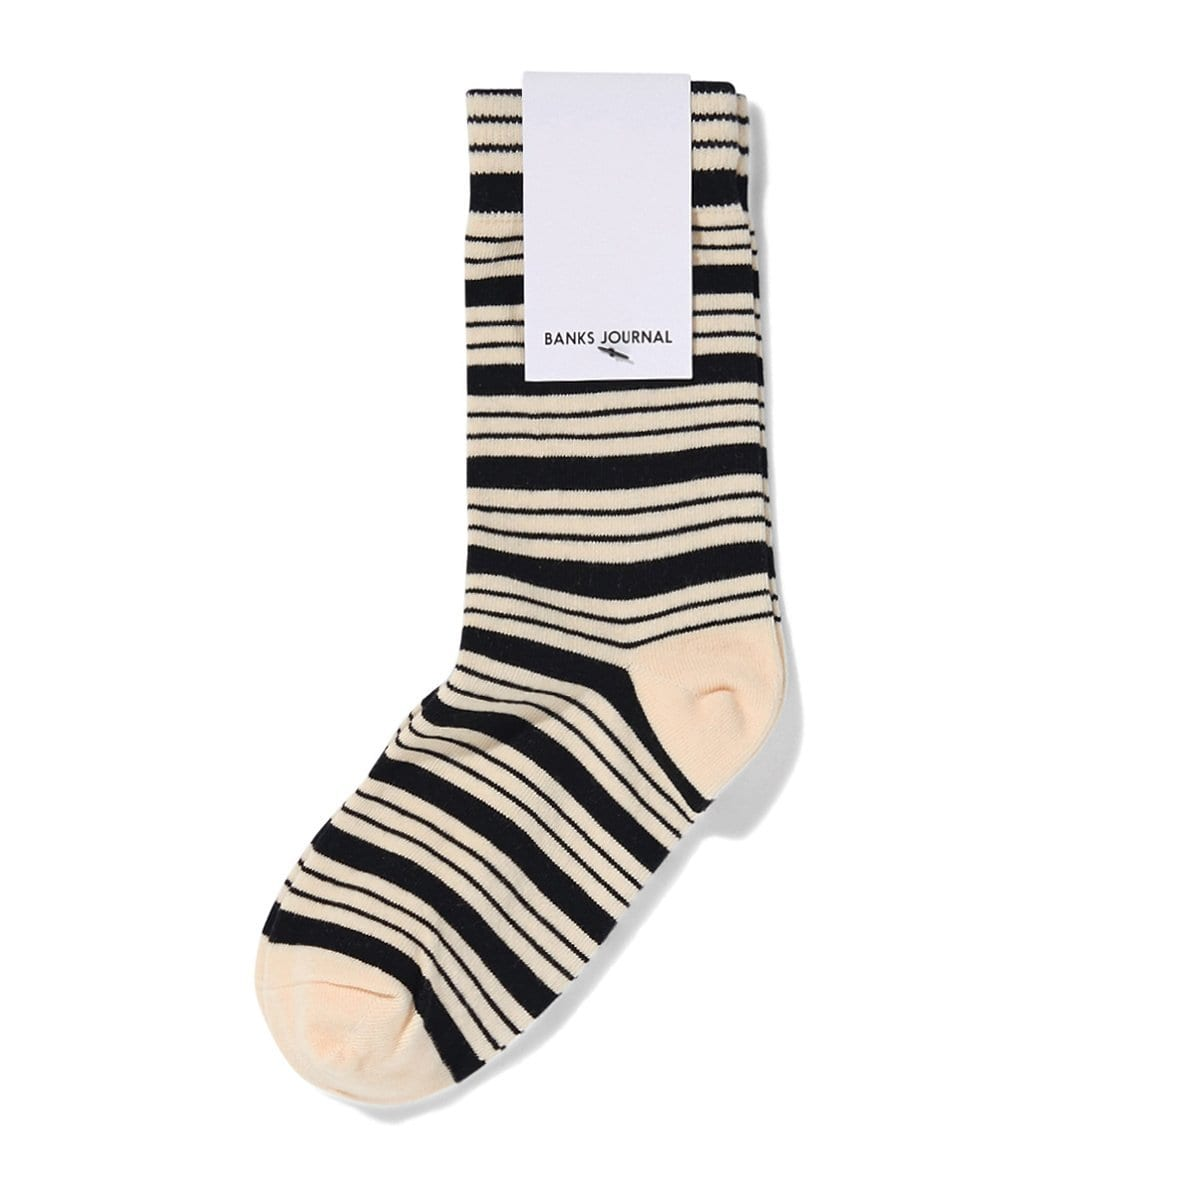 Banks Journal HIGHWAY SOCK / Neighborhood Goods